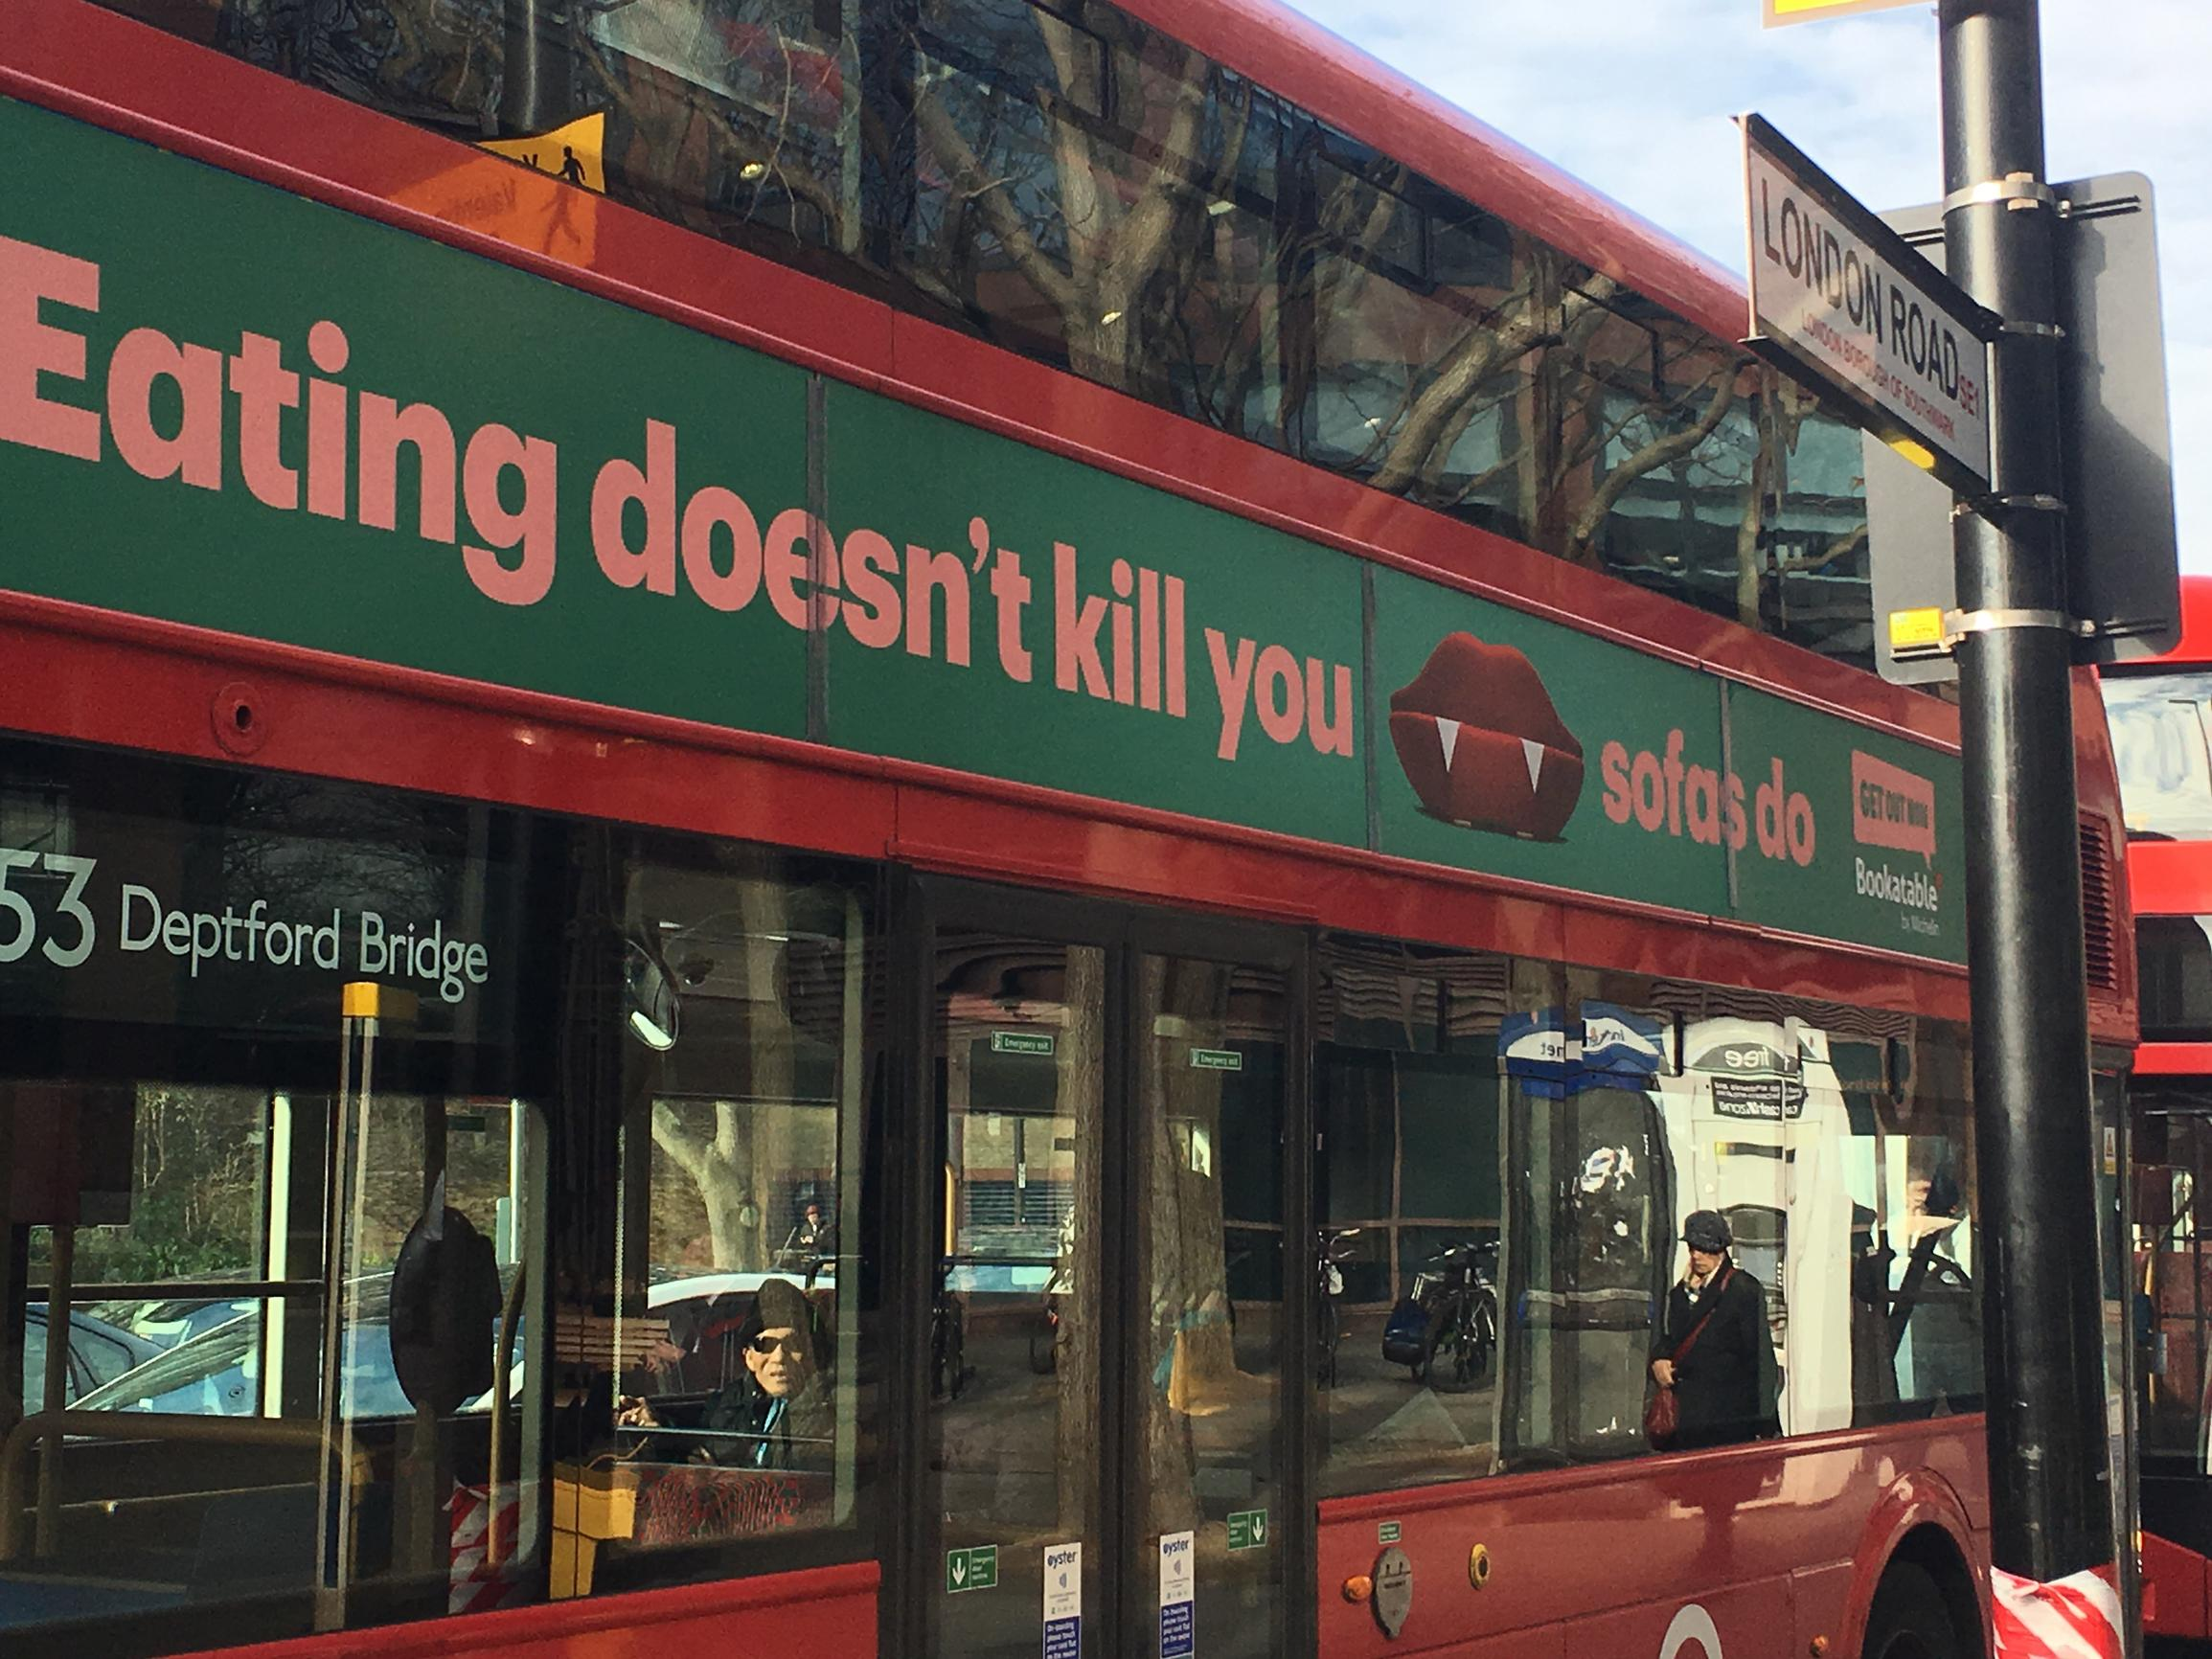 Low emission buses are improving London`s air quality – and the ads on the side are right on message too...